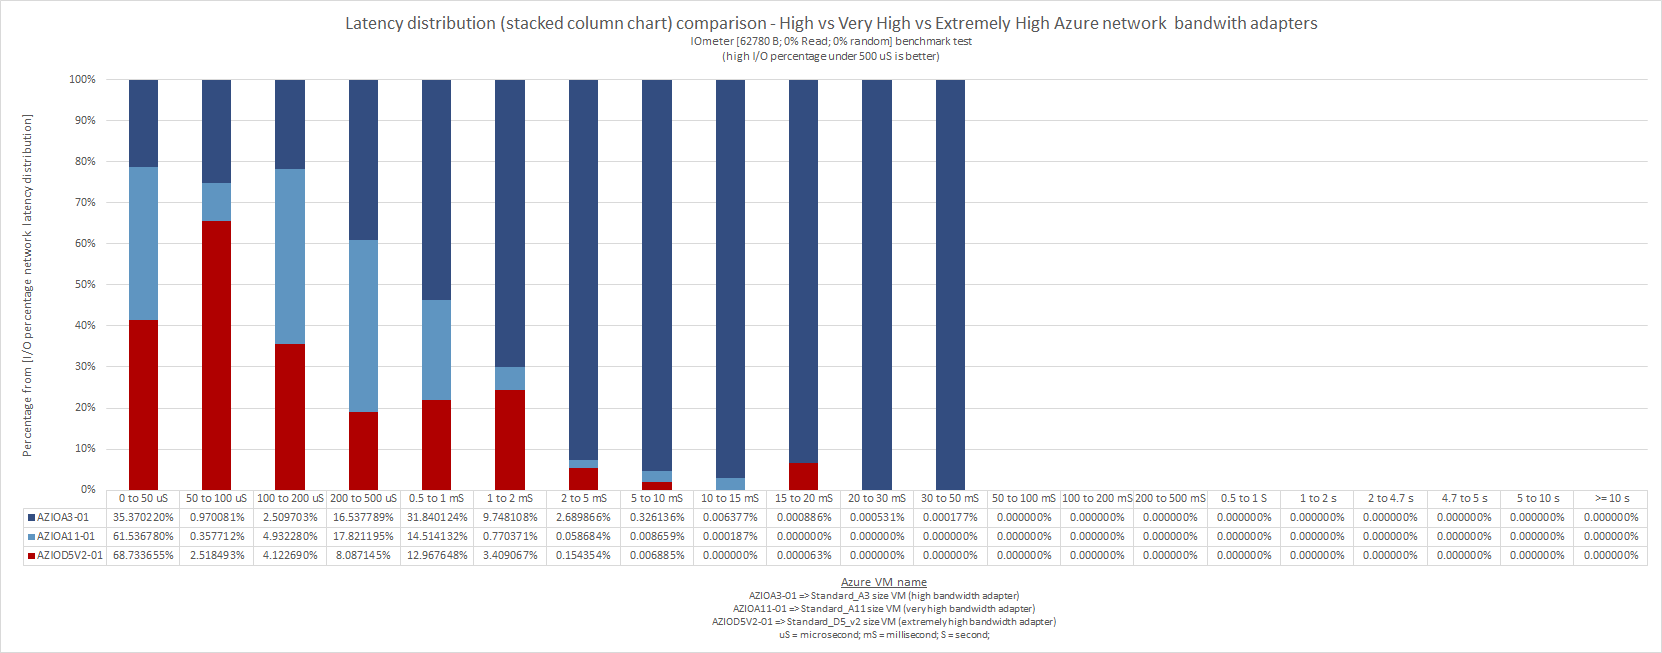 what_does_microsoft_means_by_low_moderate_high_very_high_extremely_high_azure_network_bandwidth_58